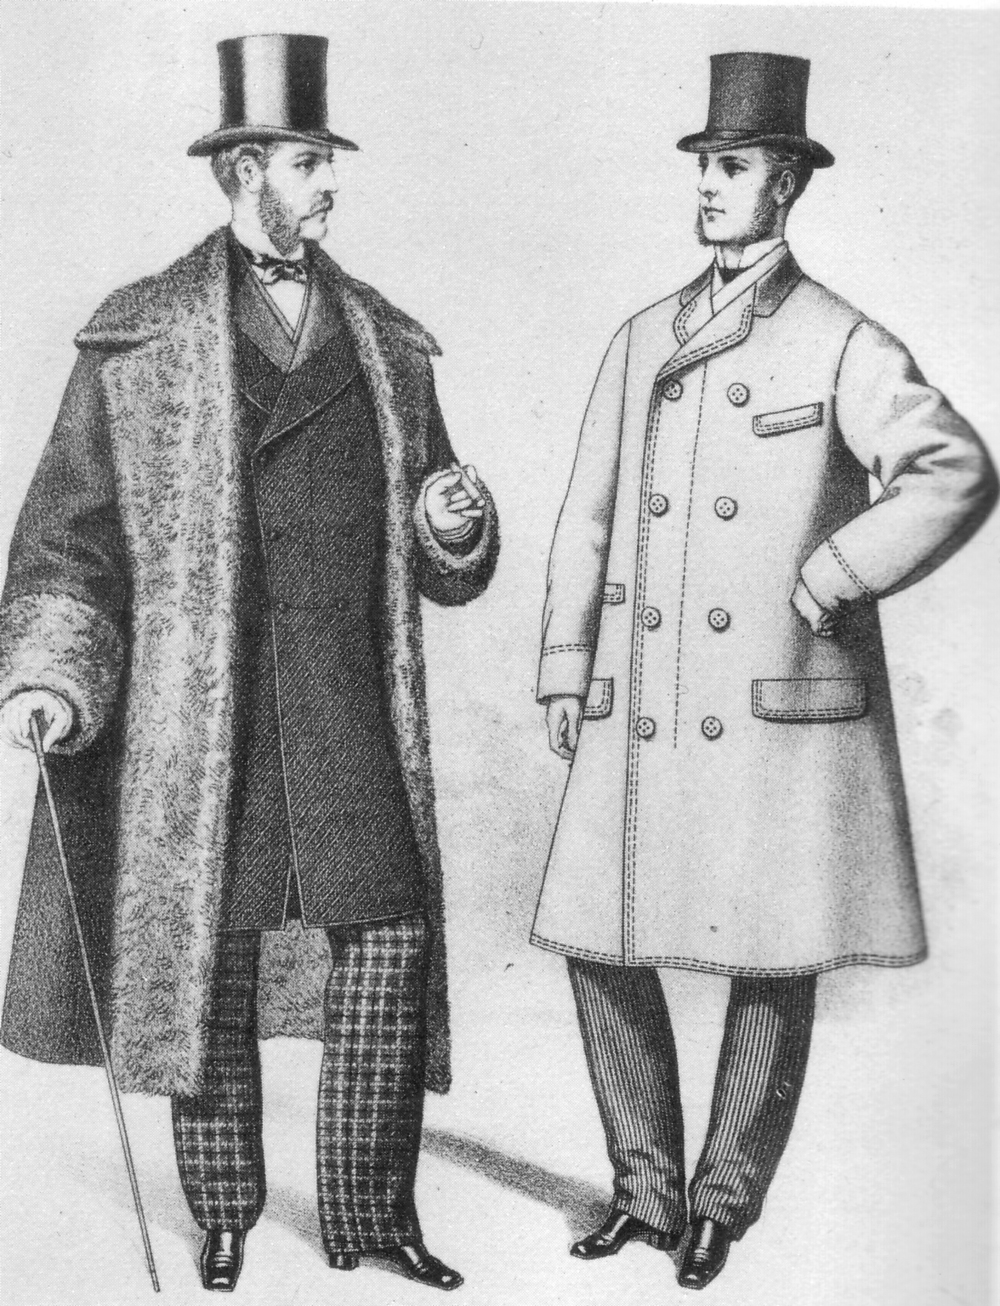 Victorian men in top hats and coats